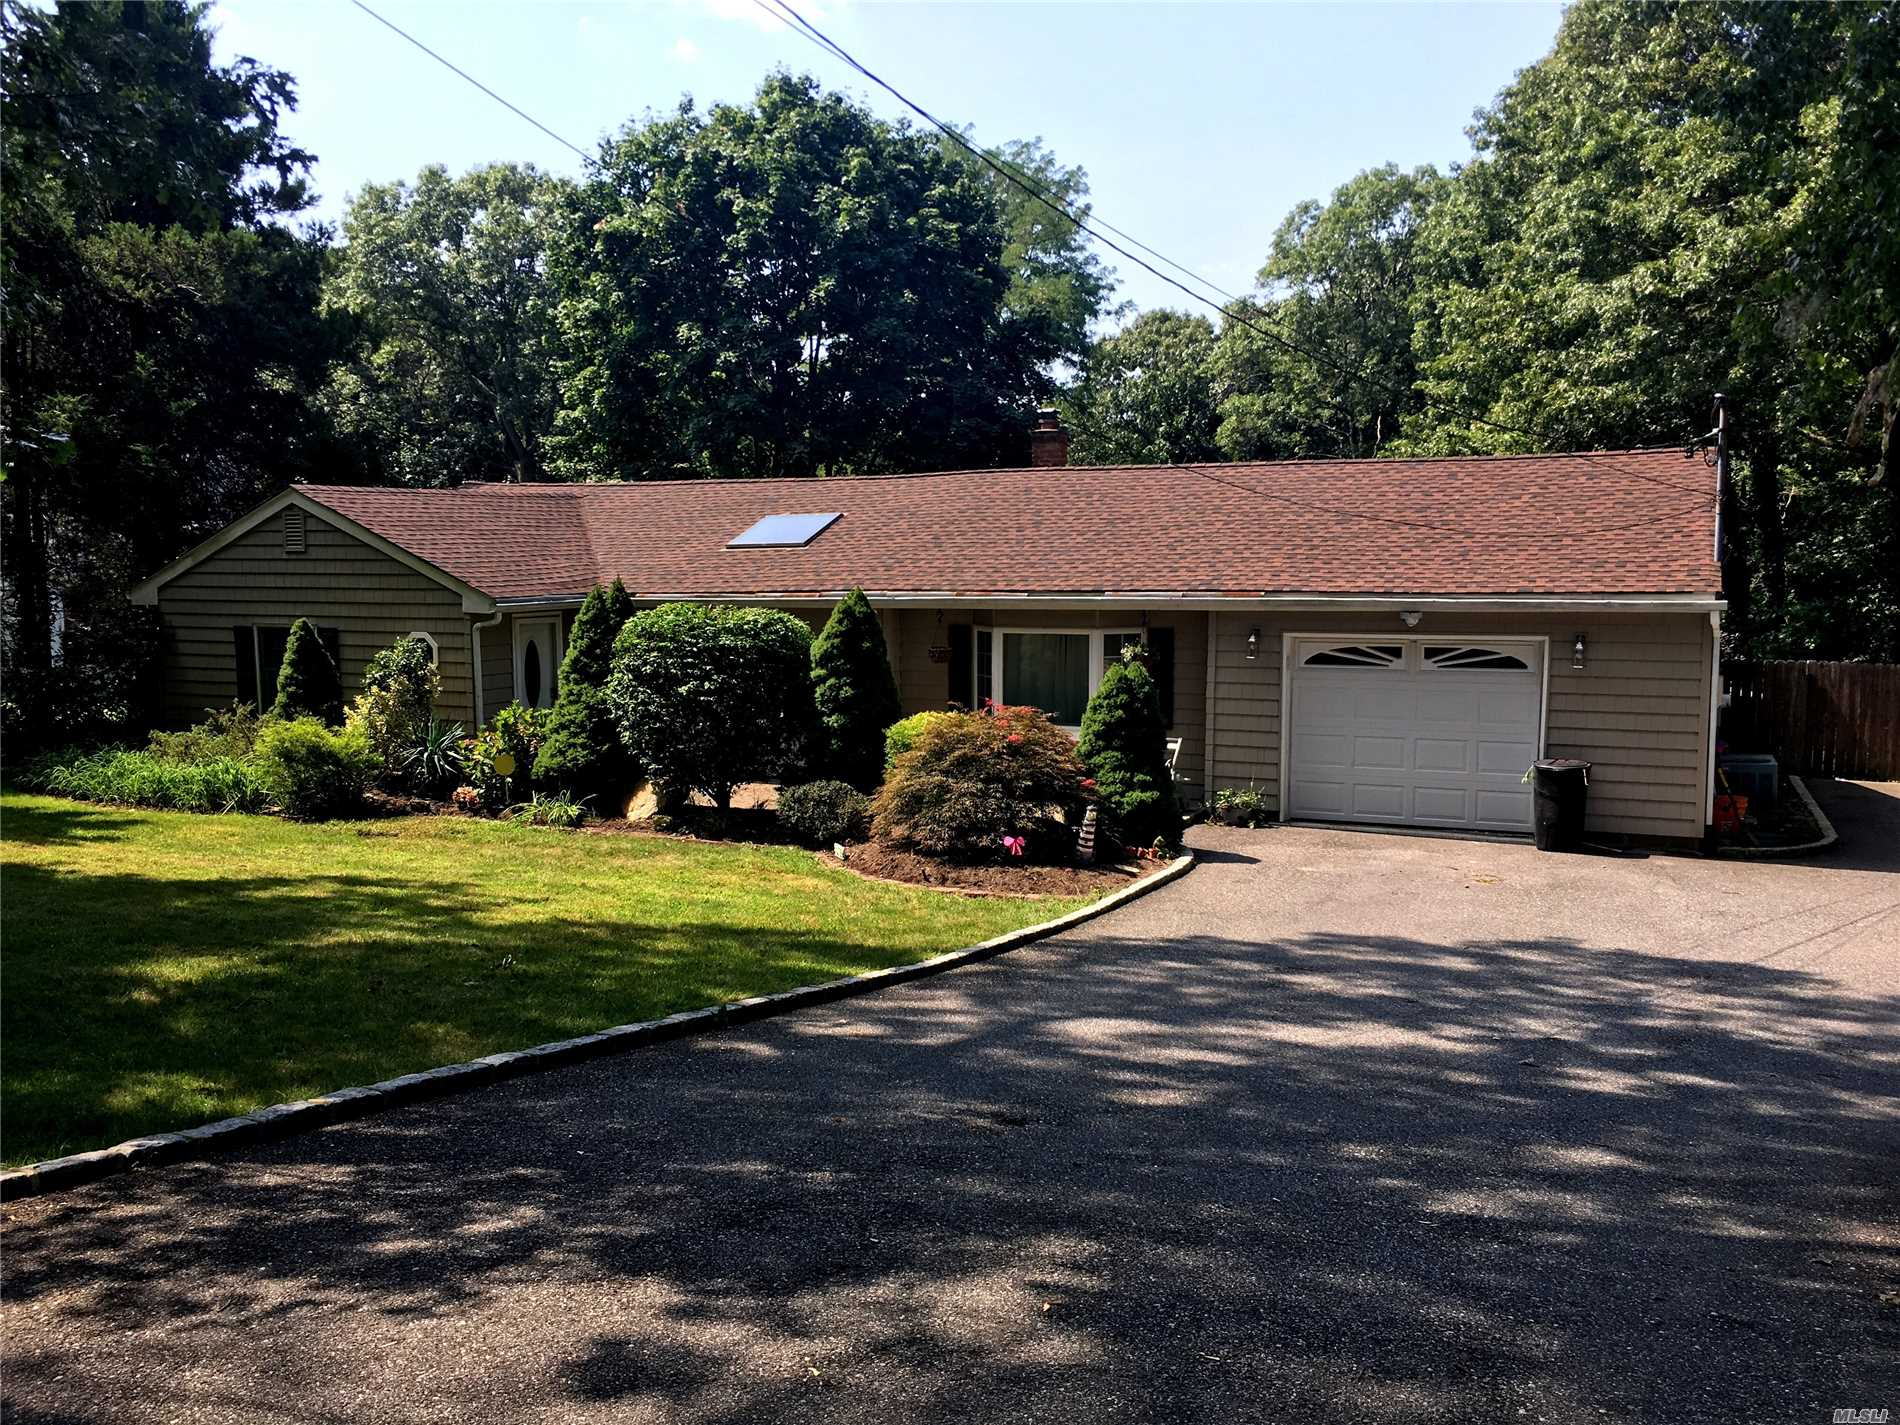 Beautiful Expanded Ranch,  Connetquot School District,  Bi Level Trex Deck Overlooking Huge Backyard,  New Heating System And Hot Water Heater,  200 Amp Electric,  Updated Kitchen With Ss Appliances, Wood Floors Throughout, Updated Baths, Crown Molding, High Hats, Built In Shelving, Finished Basement, Leased Solar Panels, In-Ground Sprinklers, Taxes With Basic Star $8, 290.85. Propane Used For Stove And Dryer